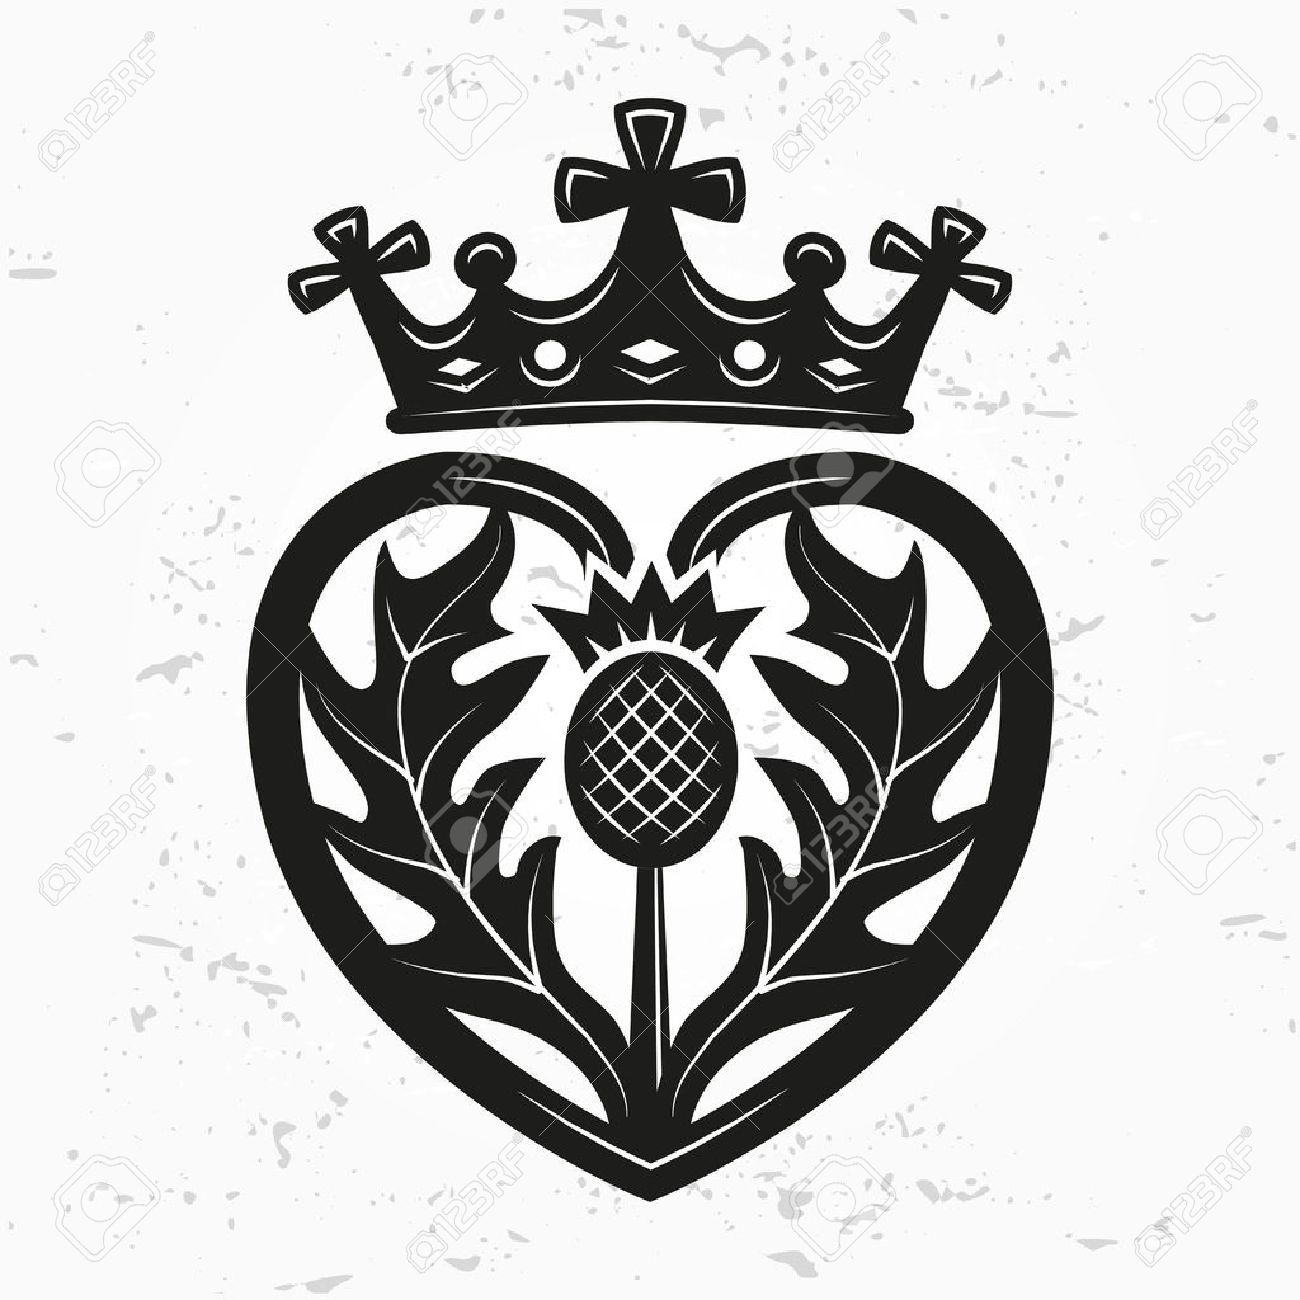 4,051 Queen Of Hearts Stock Illustrations, Cliparts And Royalty Free ...